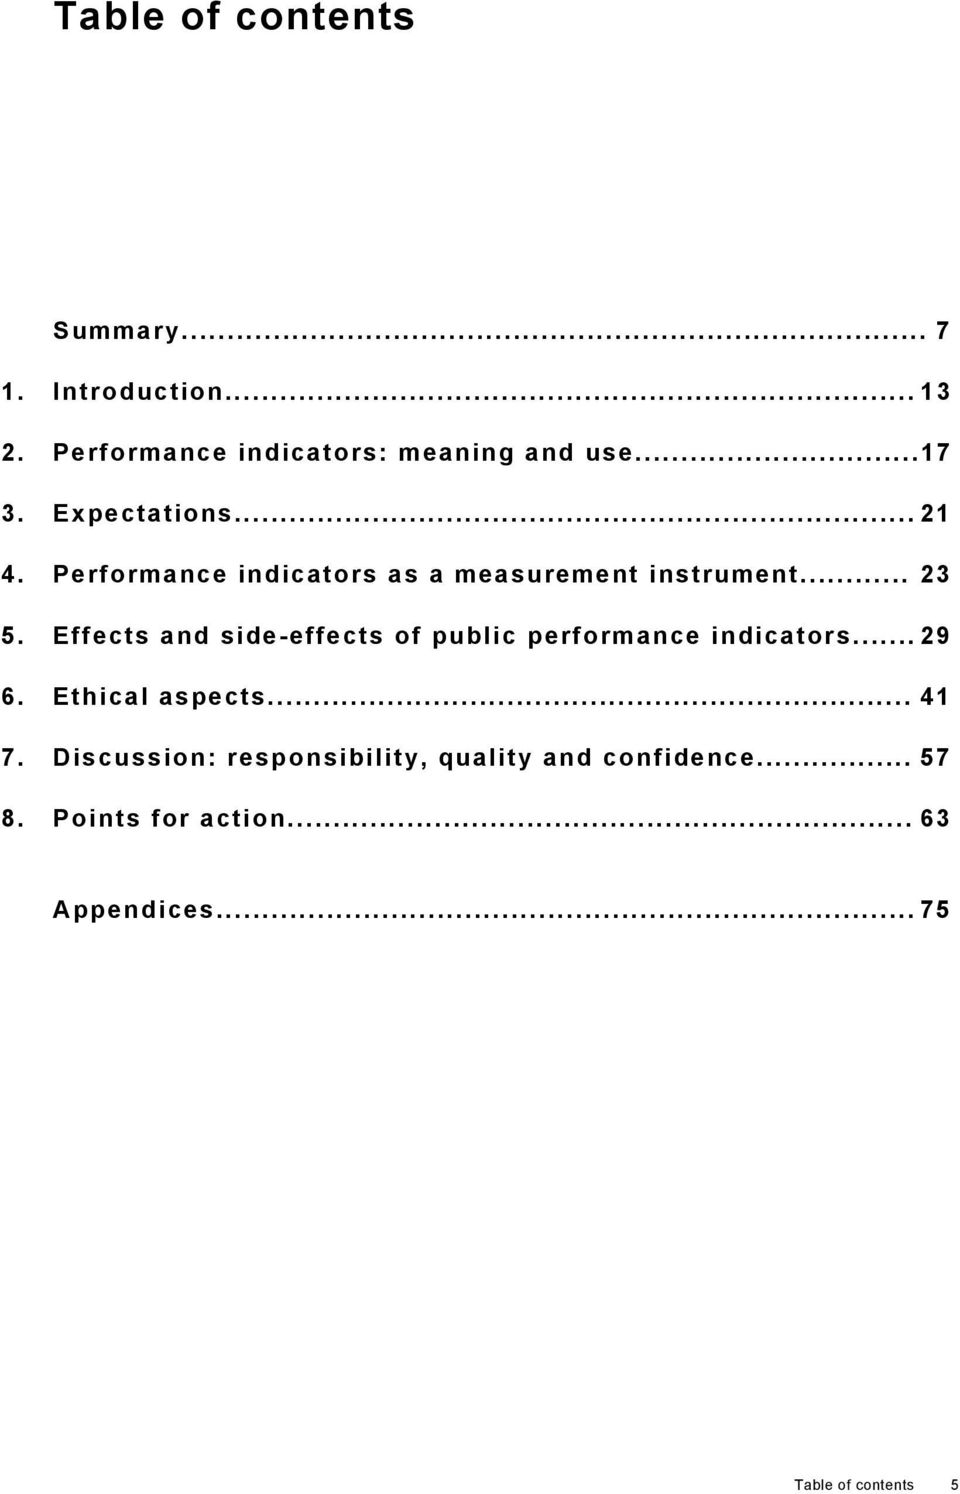 Effects and side-effects of public performance indicators... 29 6. Ethical aspects... 41 7.